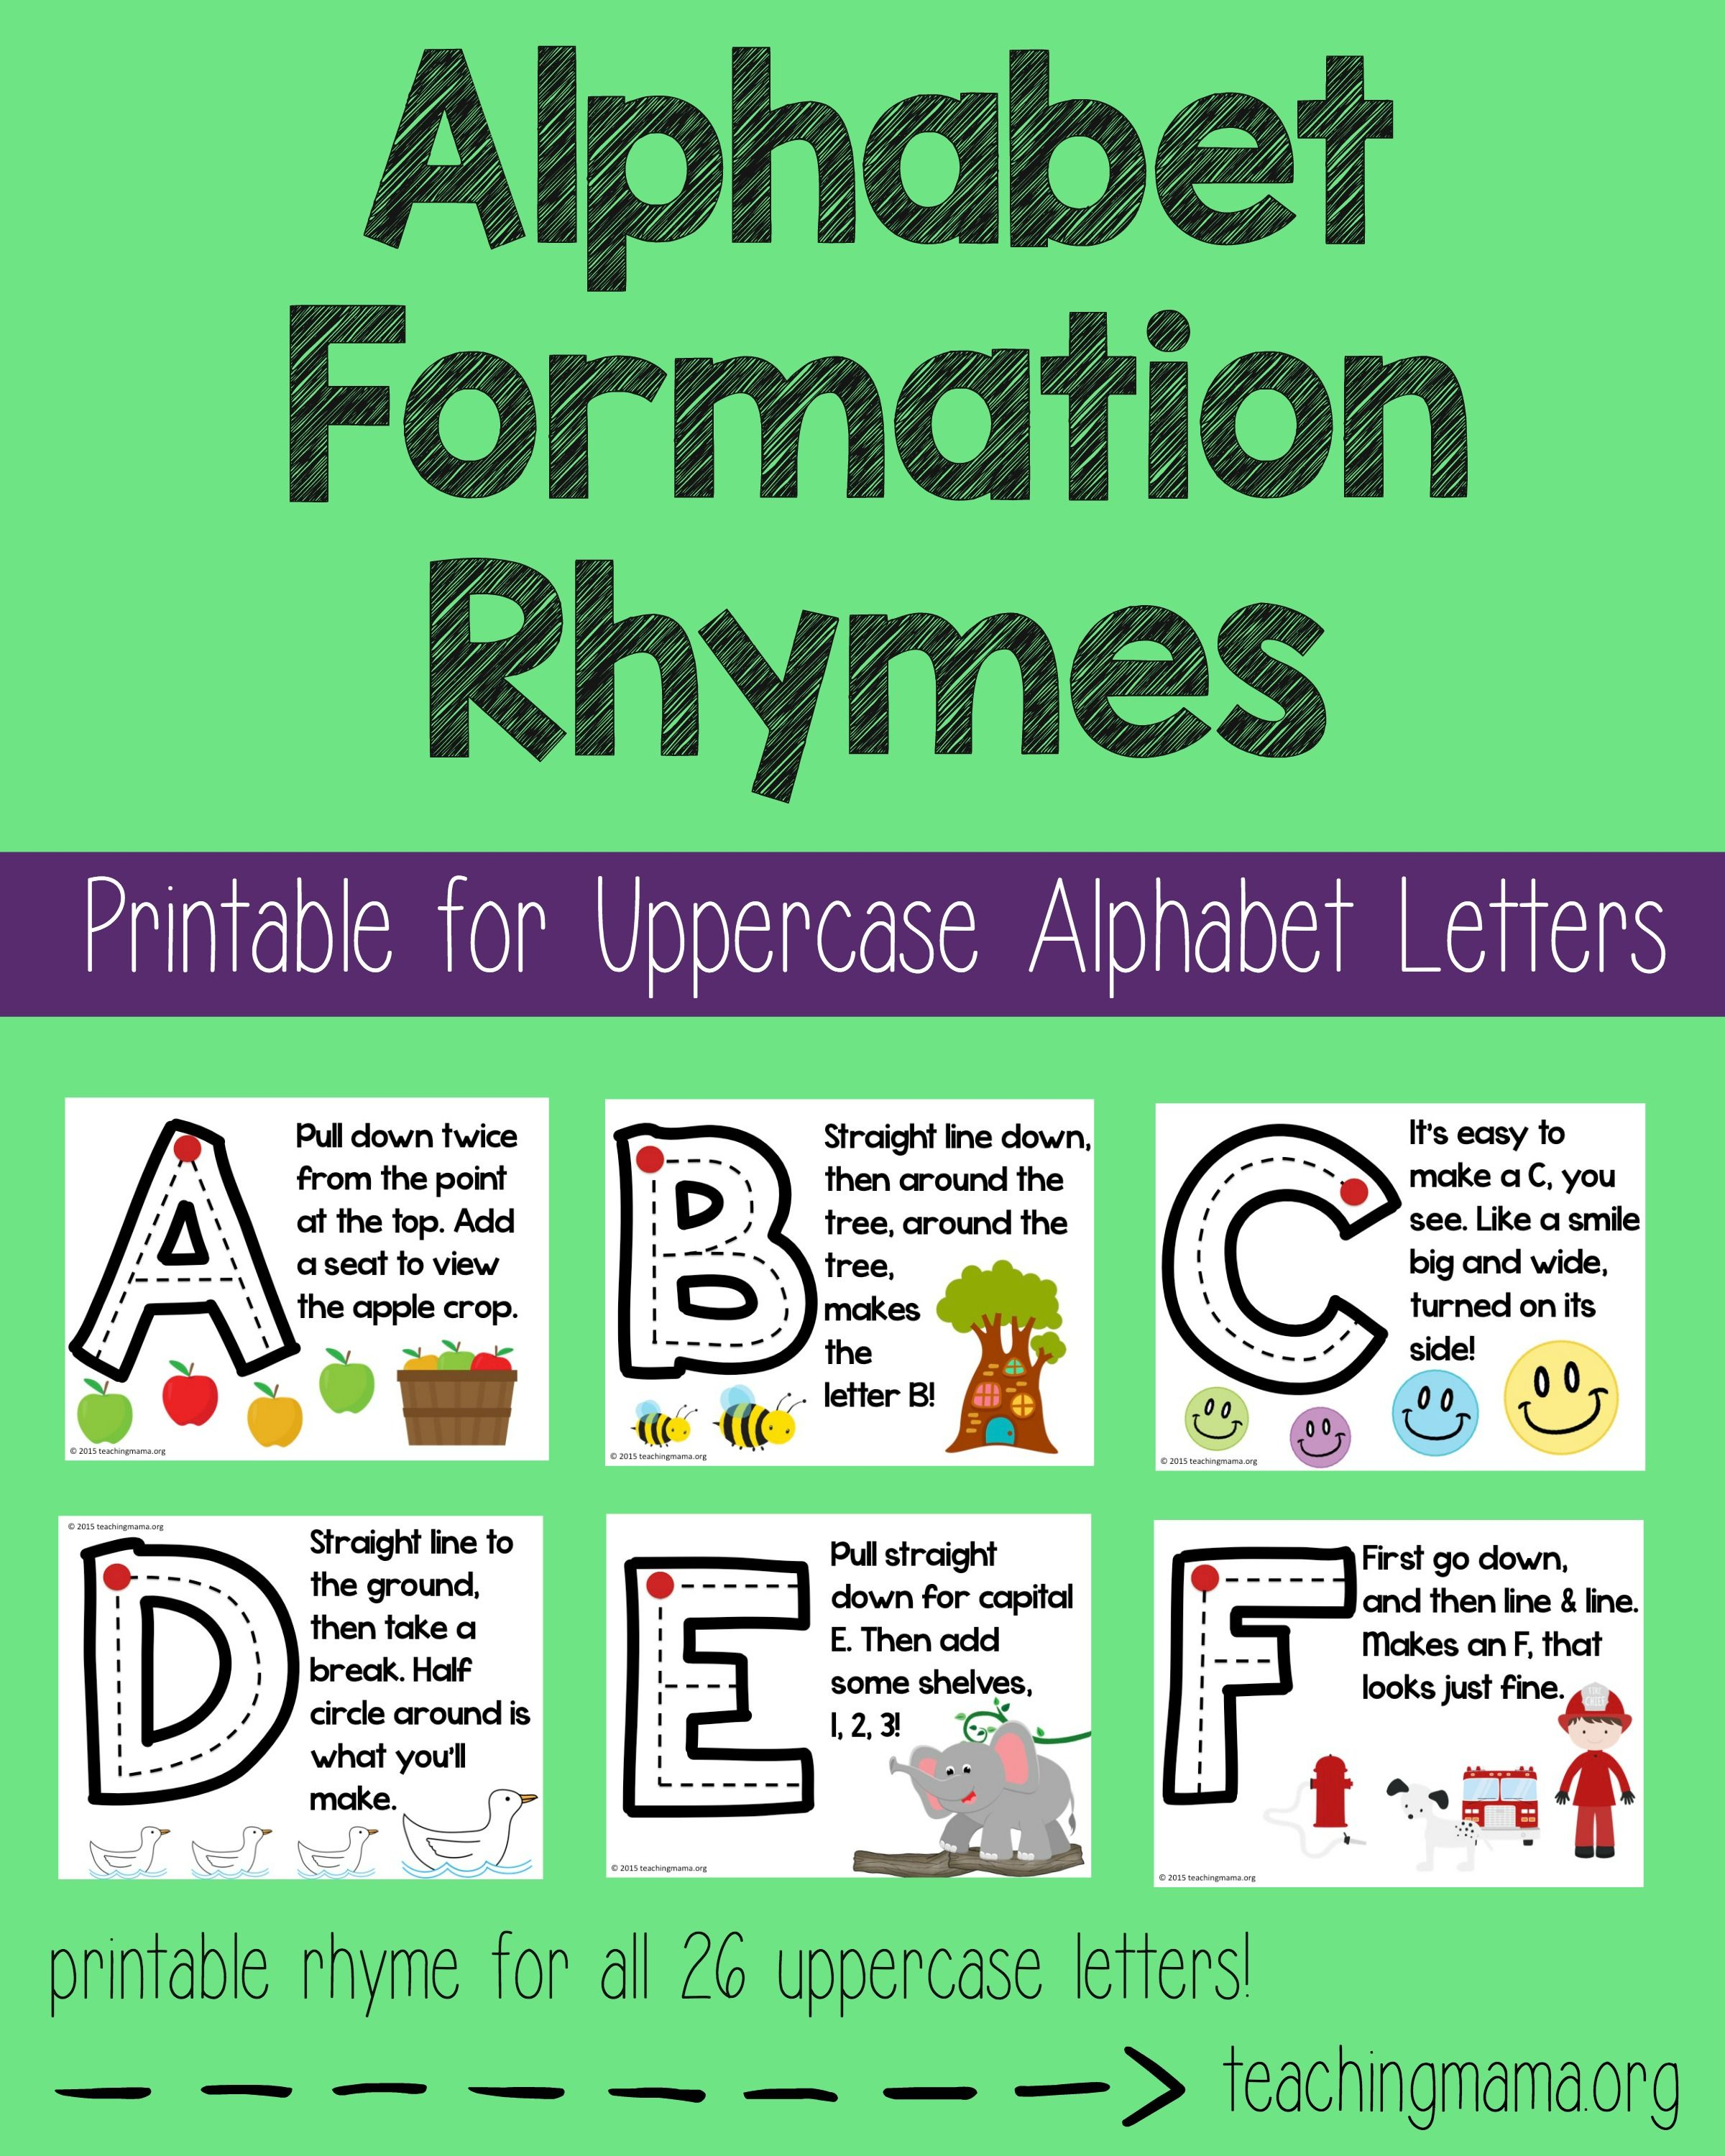 Alphabet Formation Rhymes